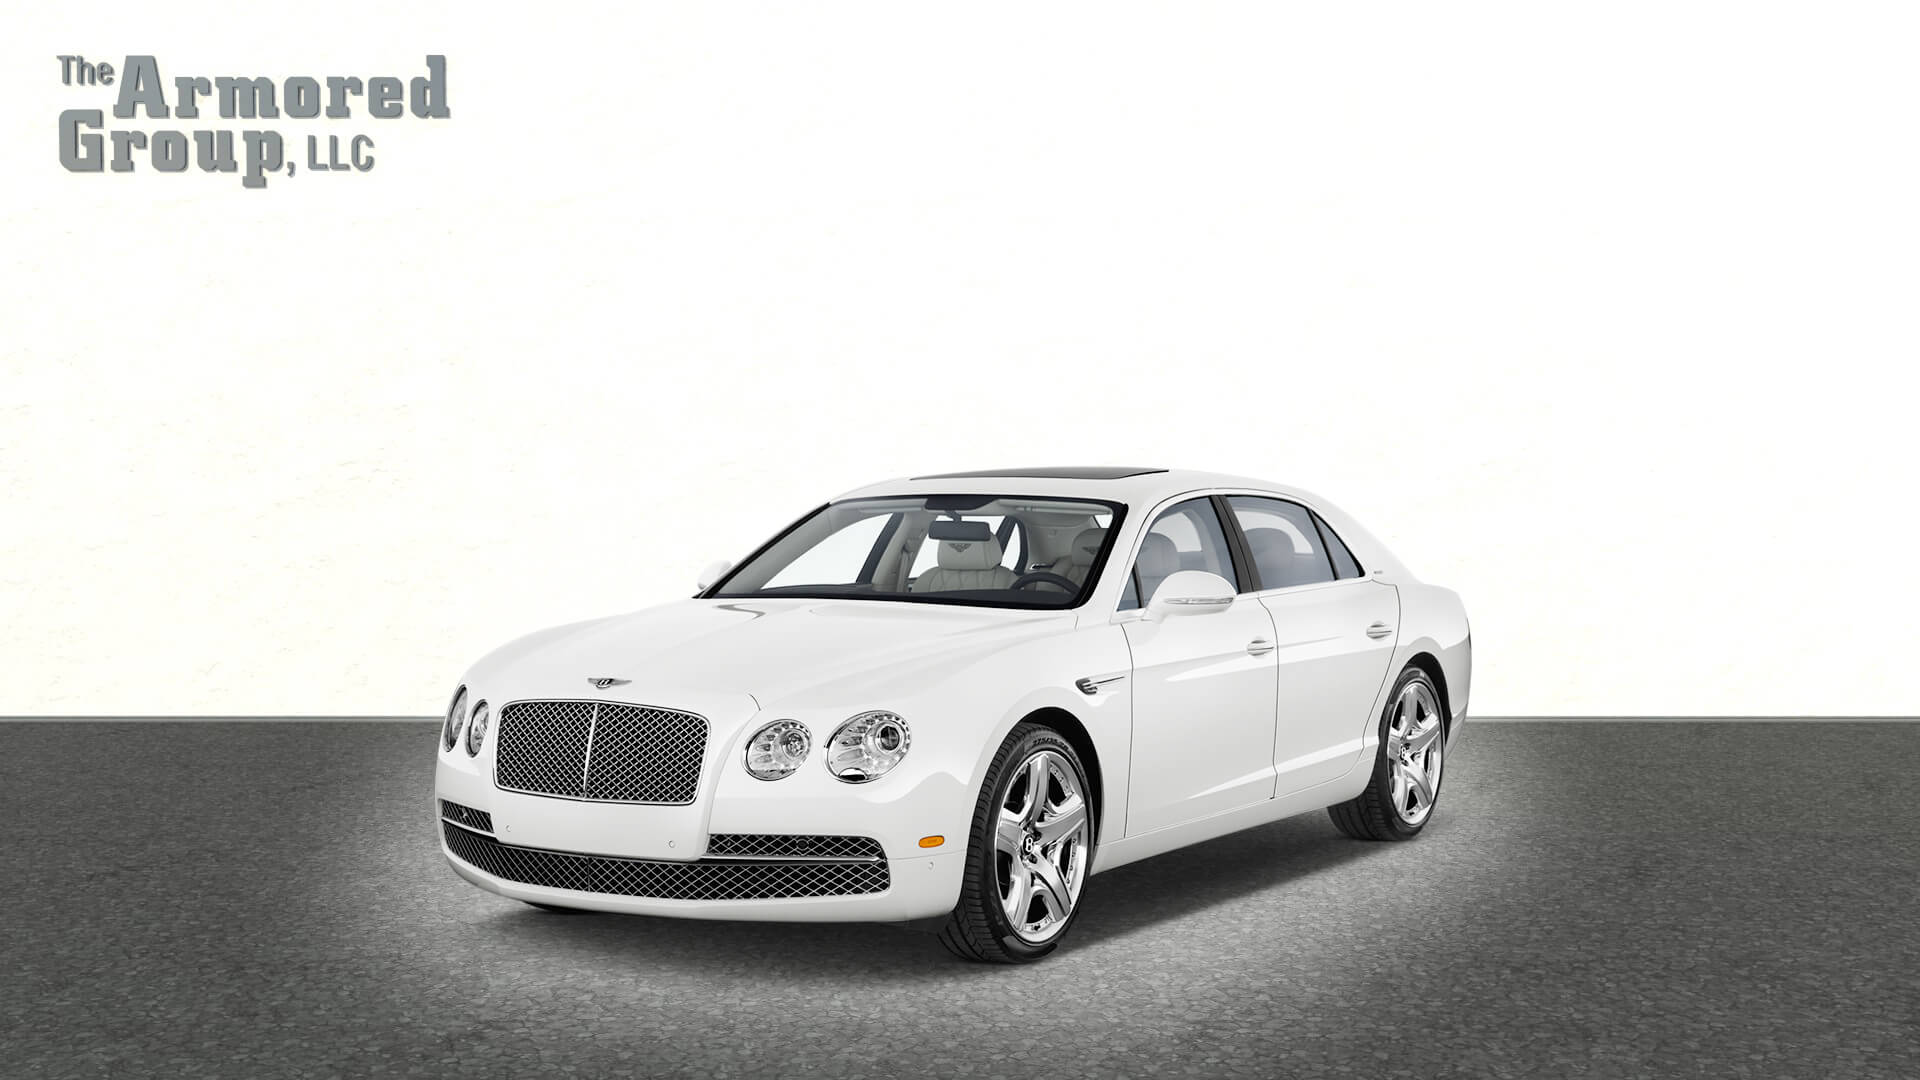 bentley front for speed maybach trend mercedes news motor quarter en sale mulsanne vs michigan motion three in